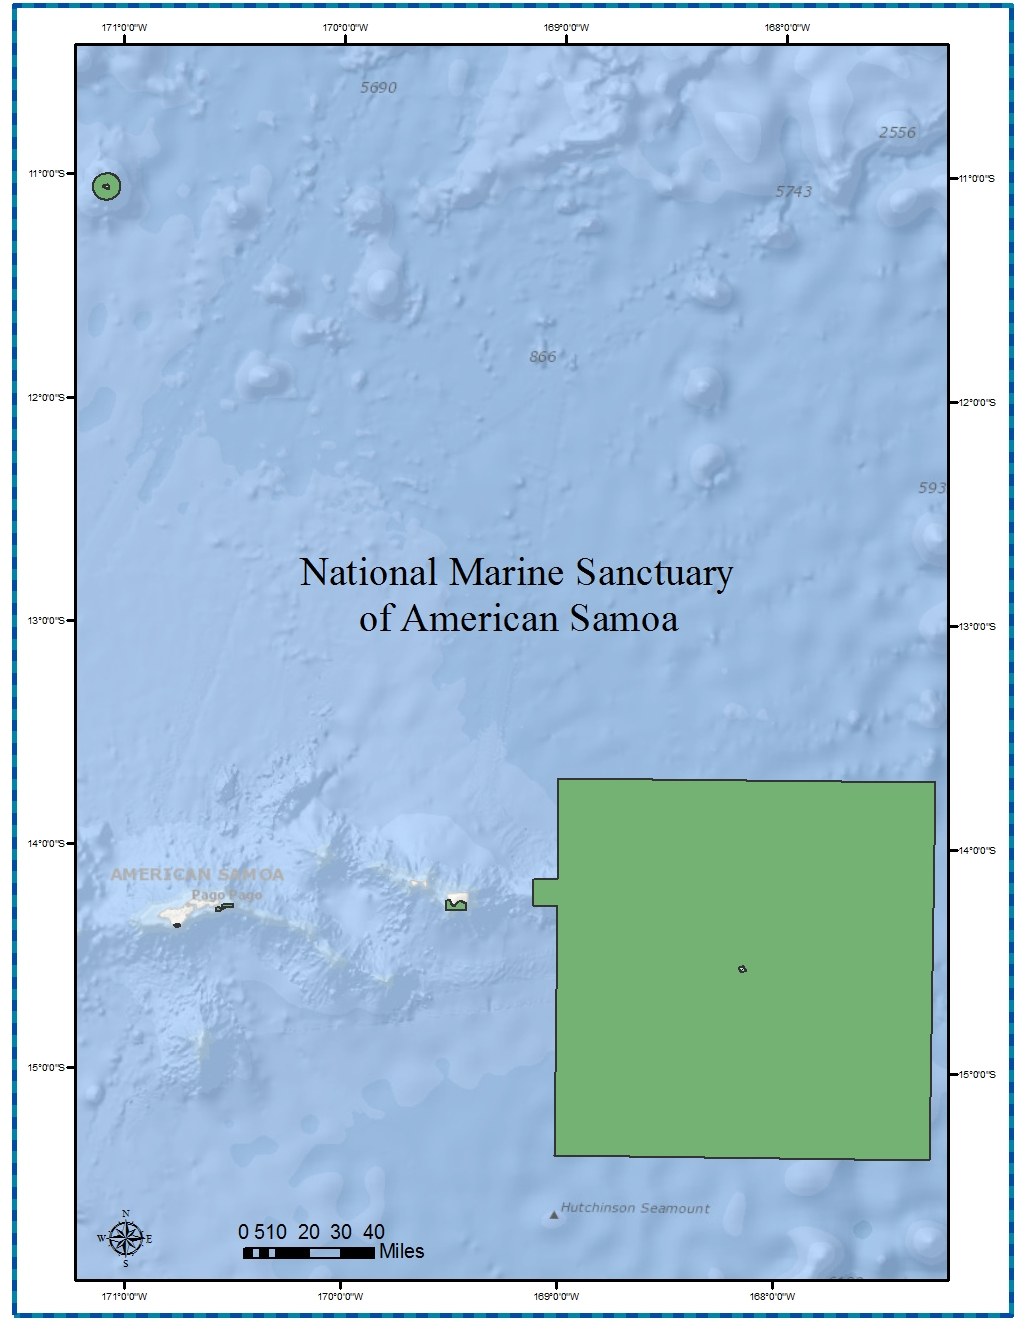 Geographic Information System Data | Office of National Marine